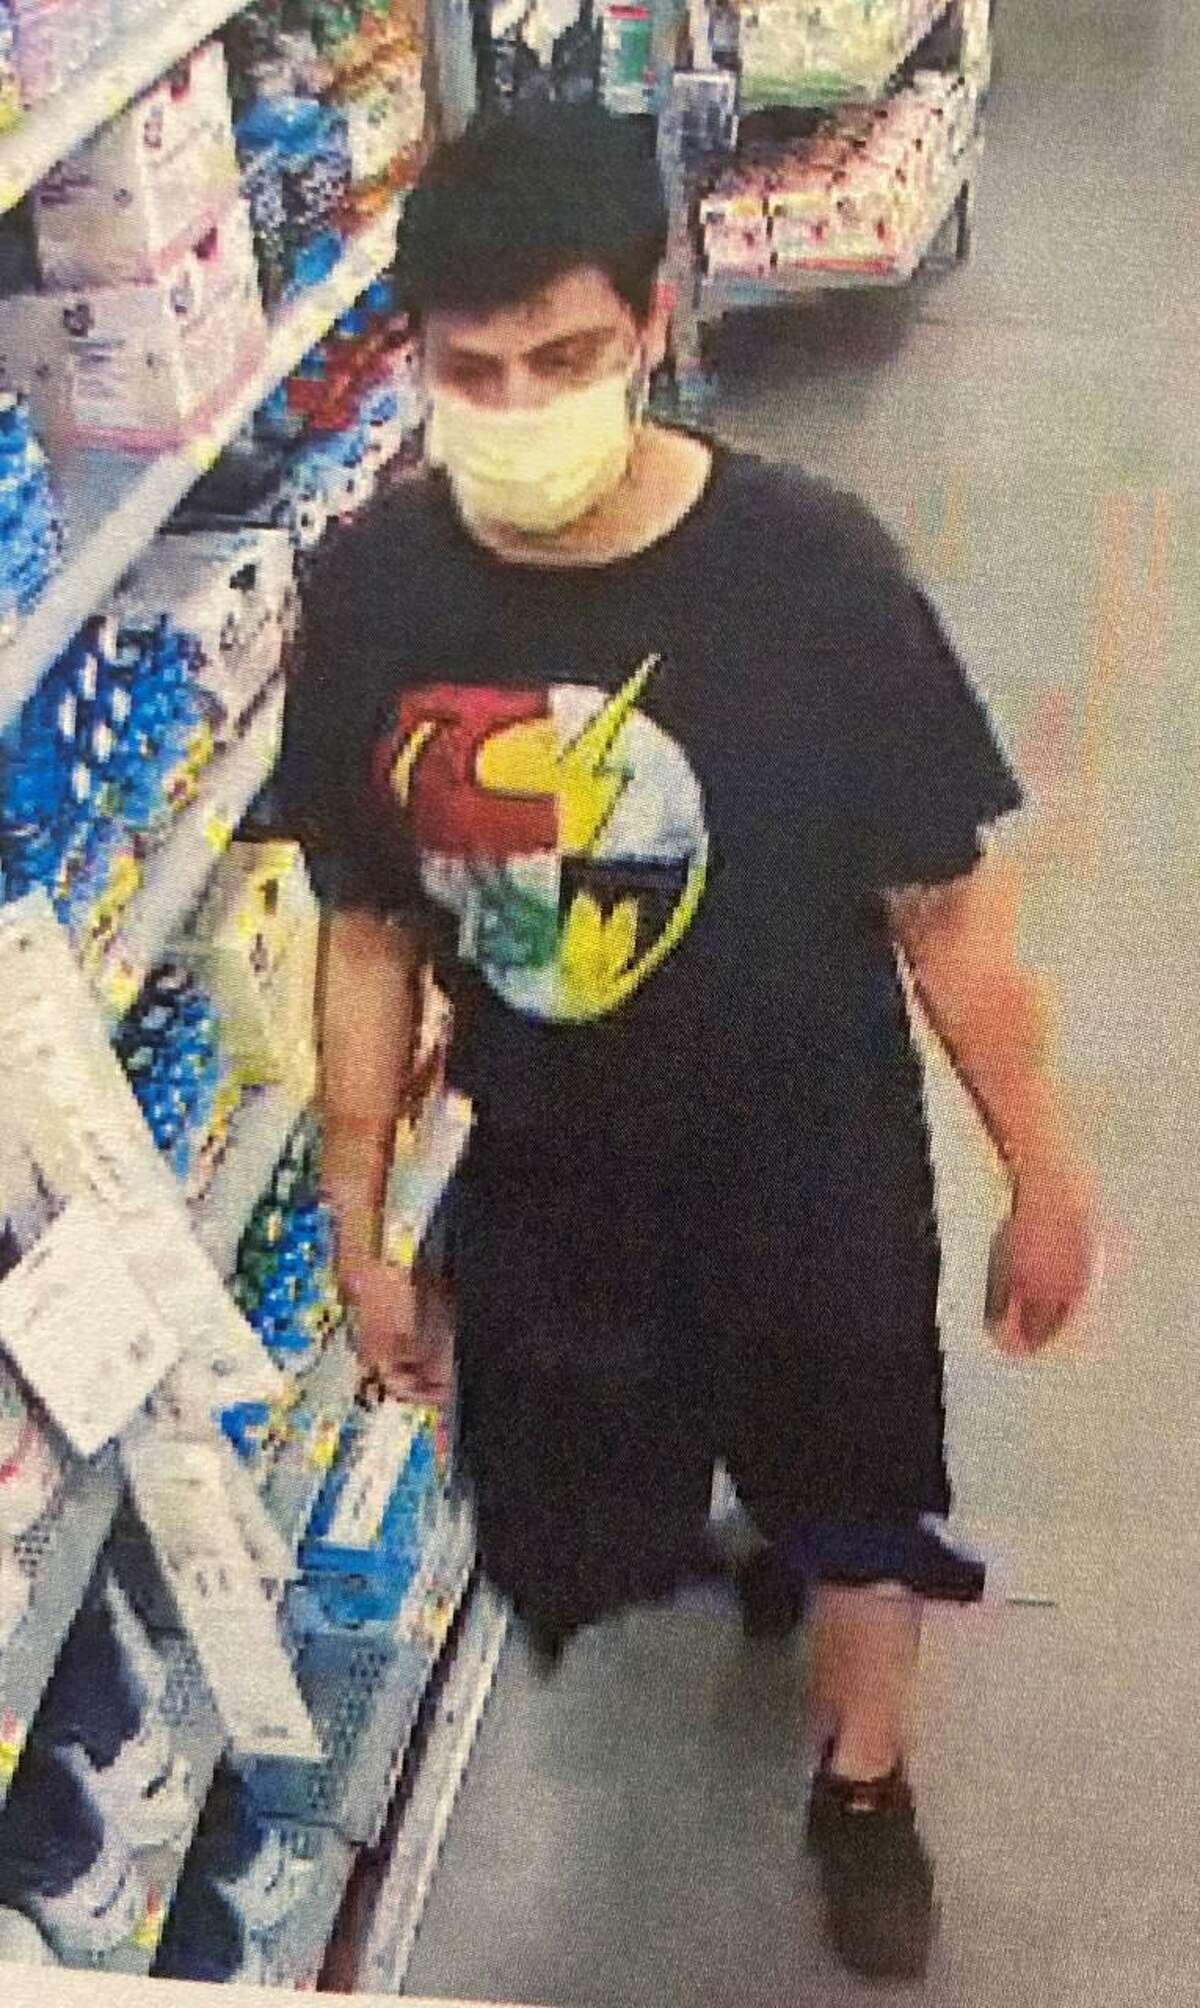 Laredo police said this man wearing a Justice League T-shirt is wanted in relation to a recent assault.